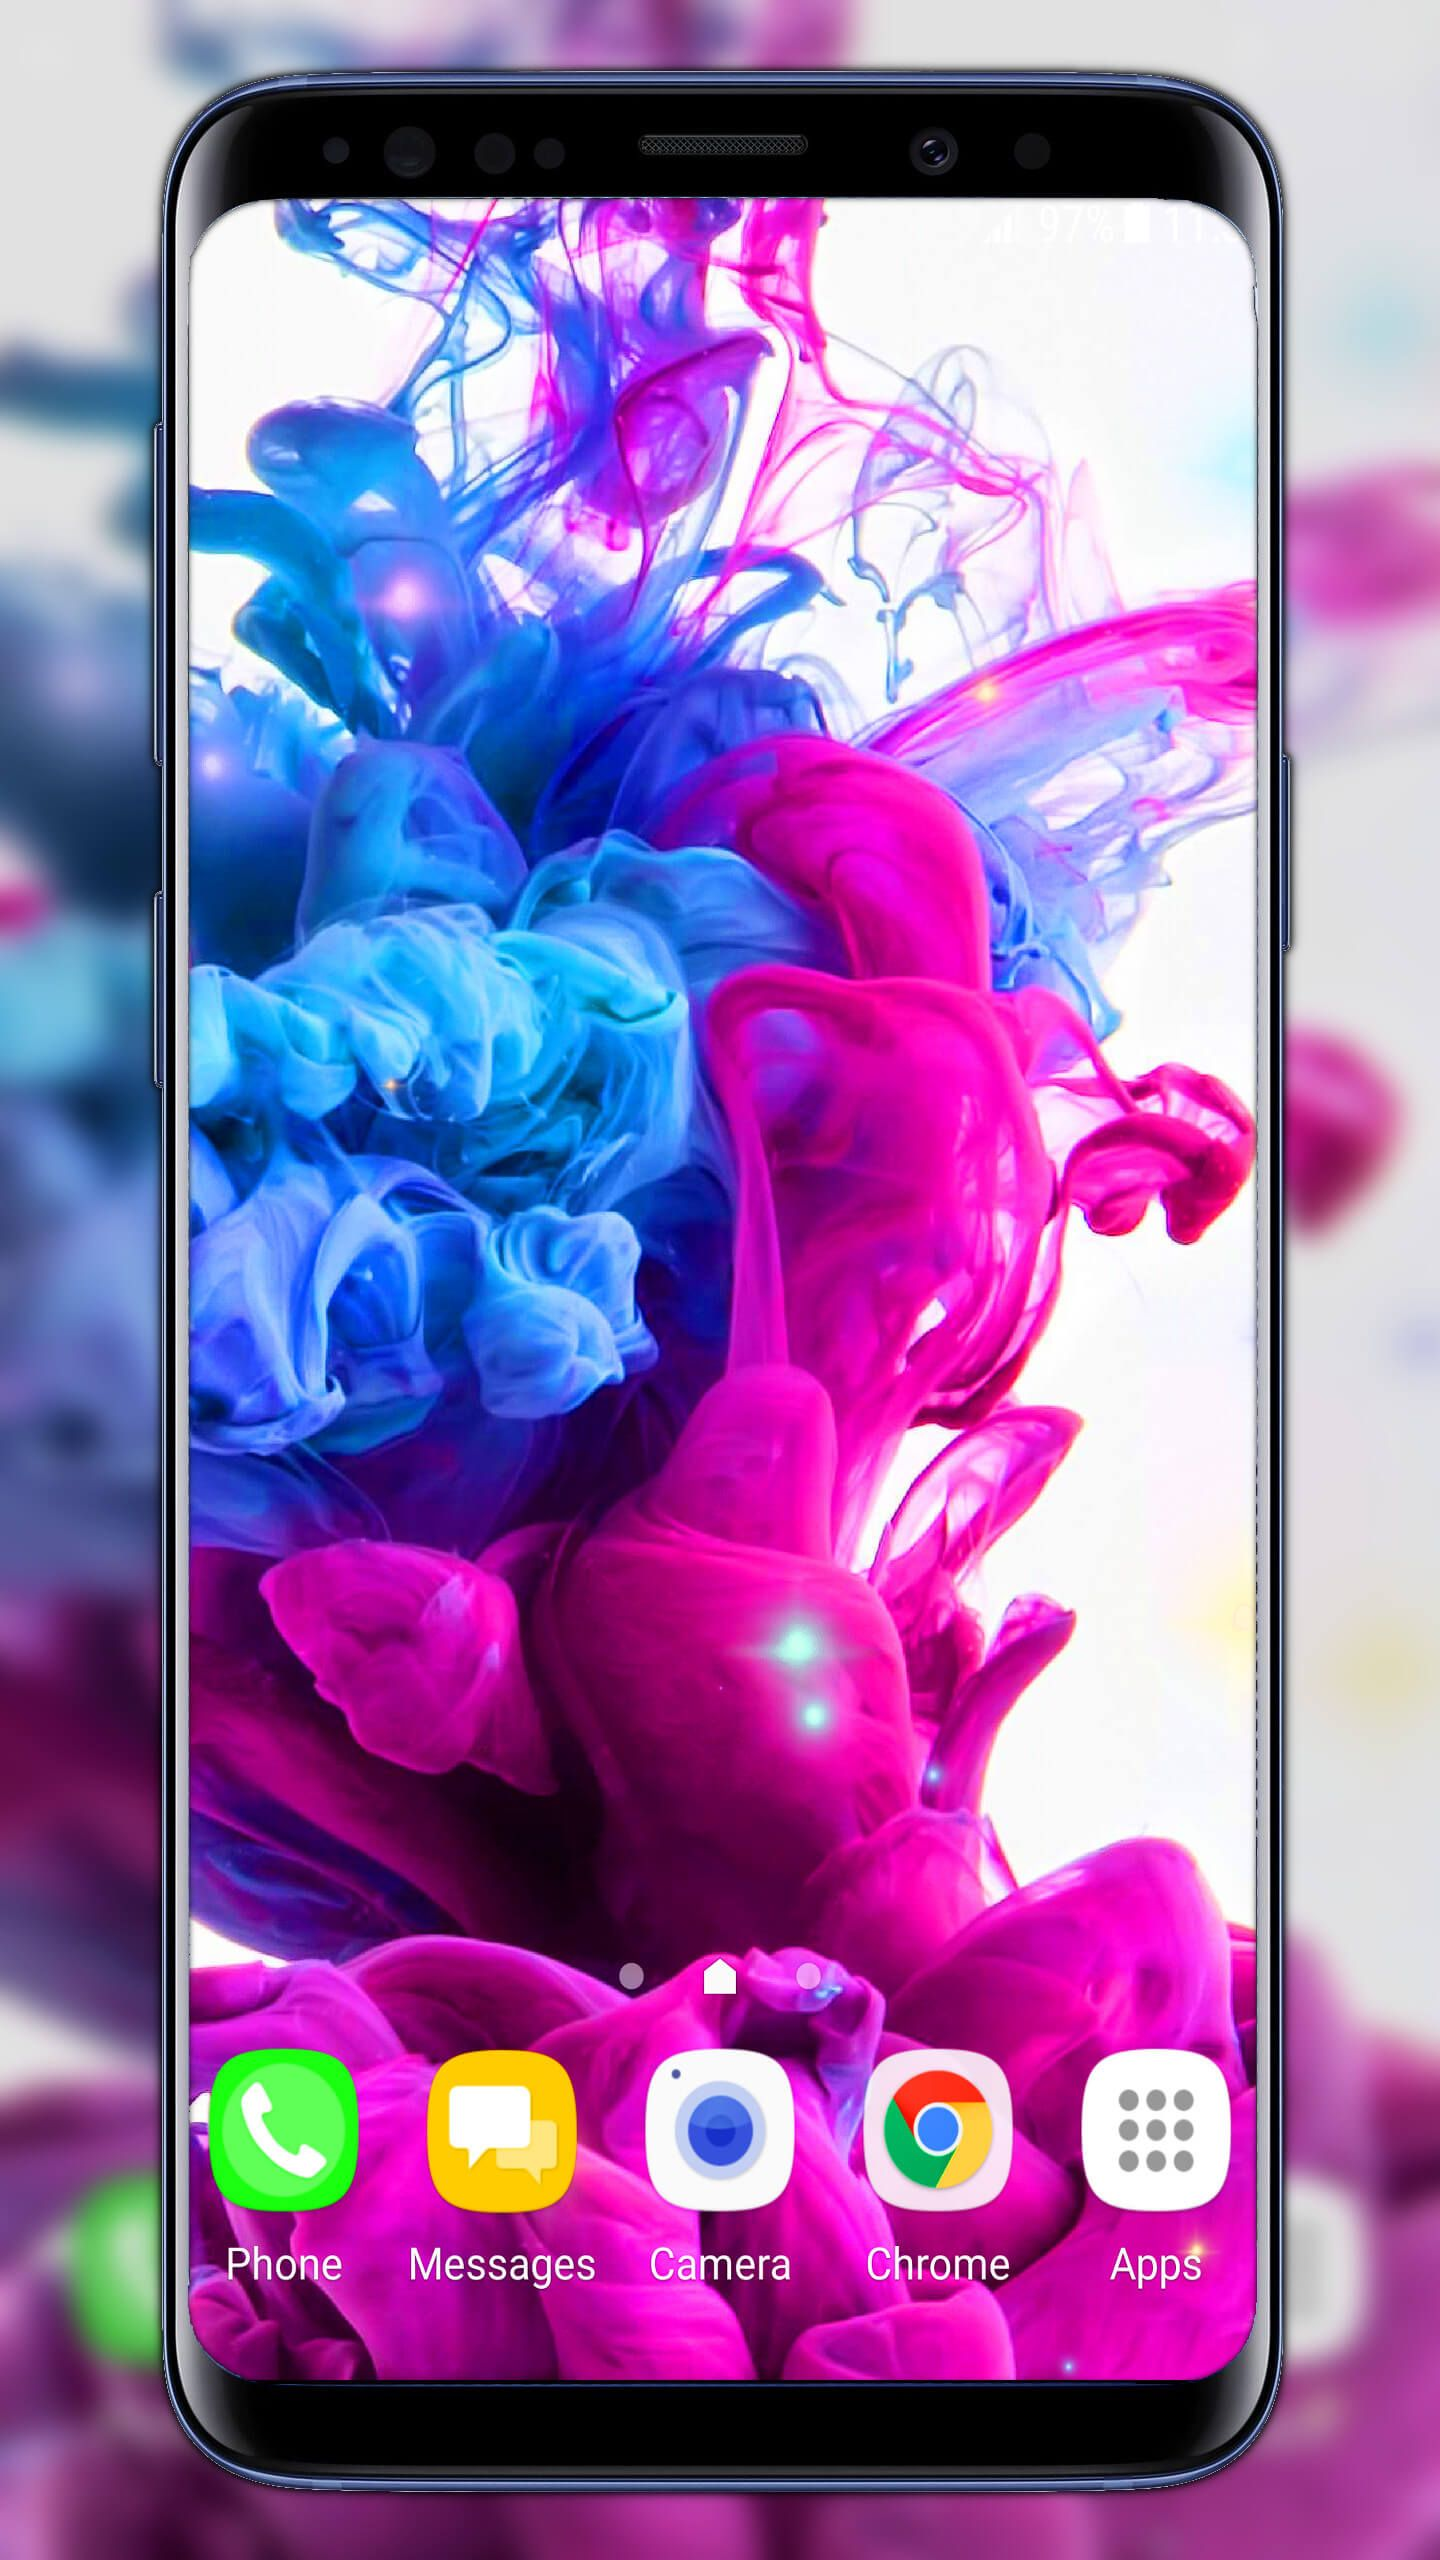 Ink In Water Live Wallpaper Inkinwater Waterdrop Wallpaper Ink In Water Water Live Wallpaper Live Wallpapers